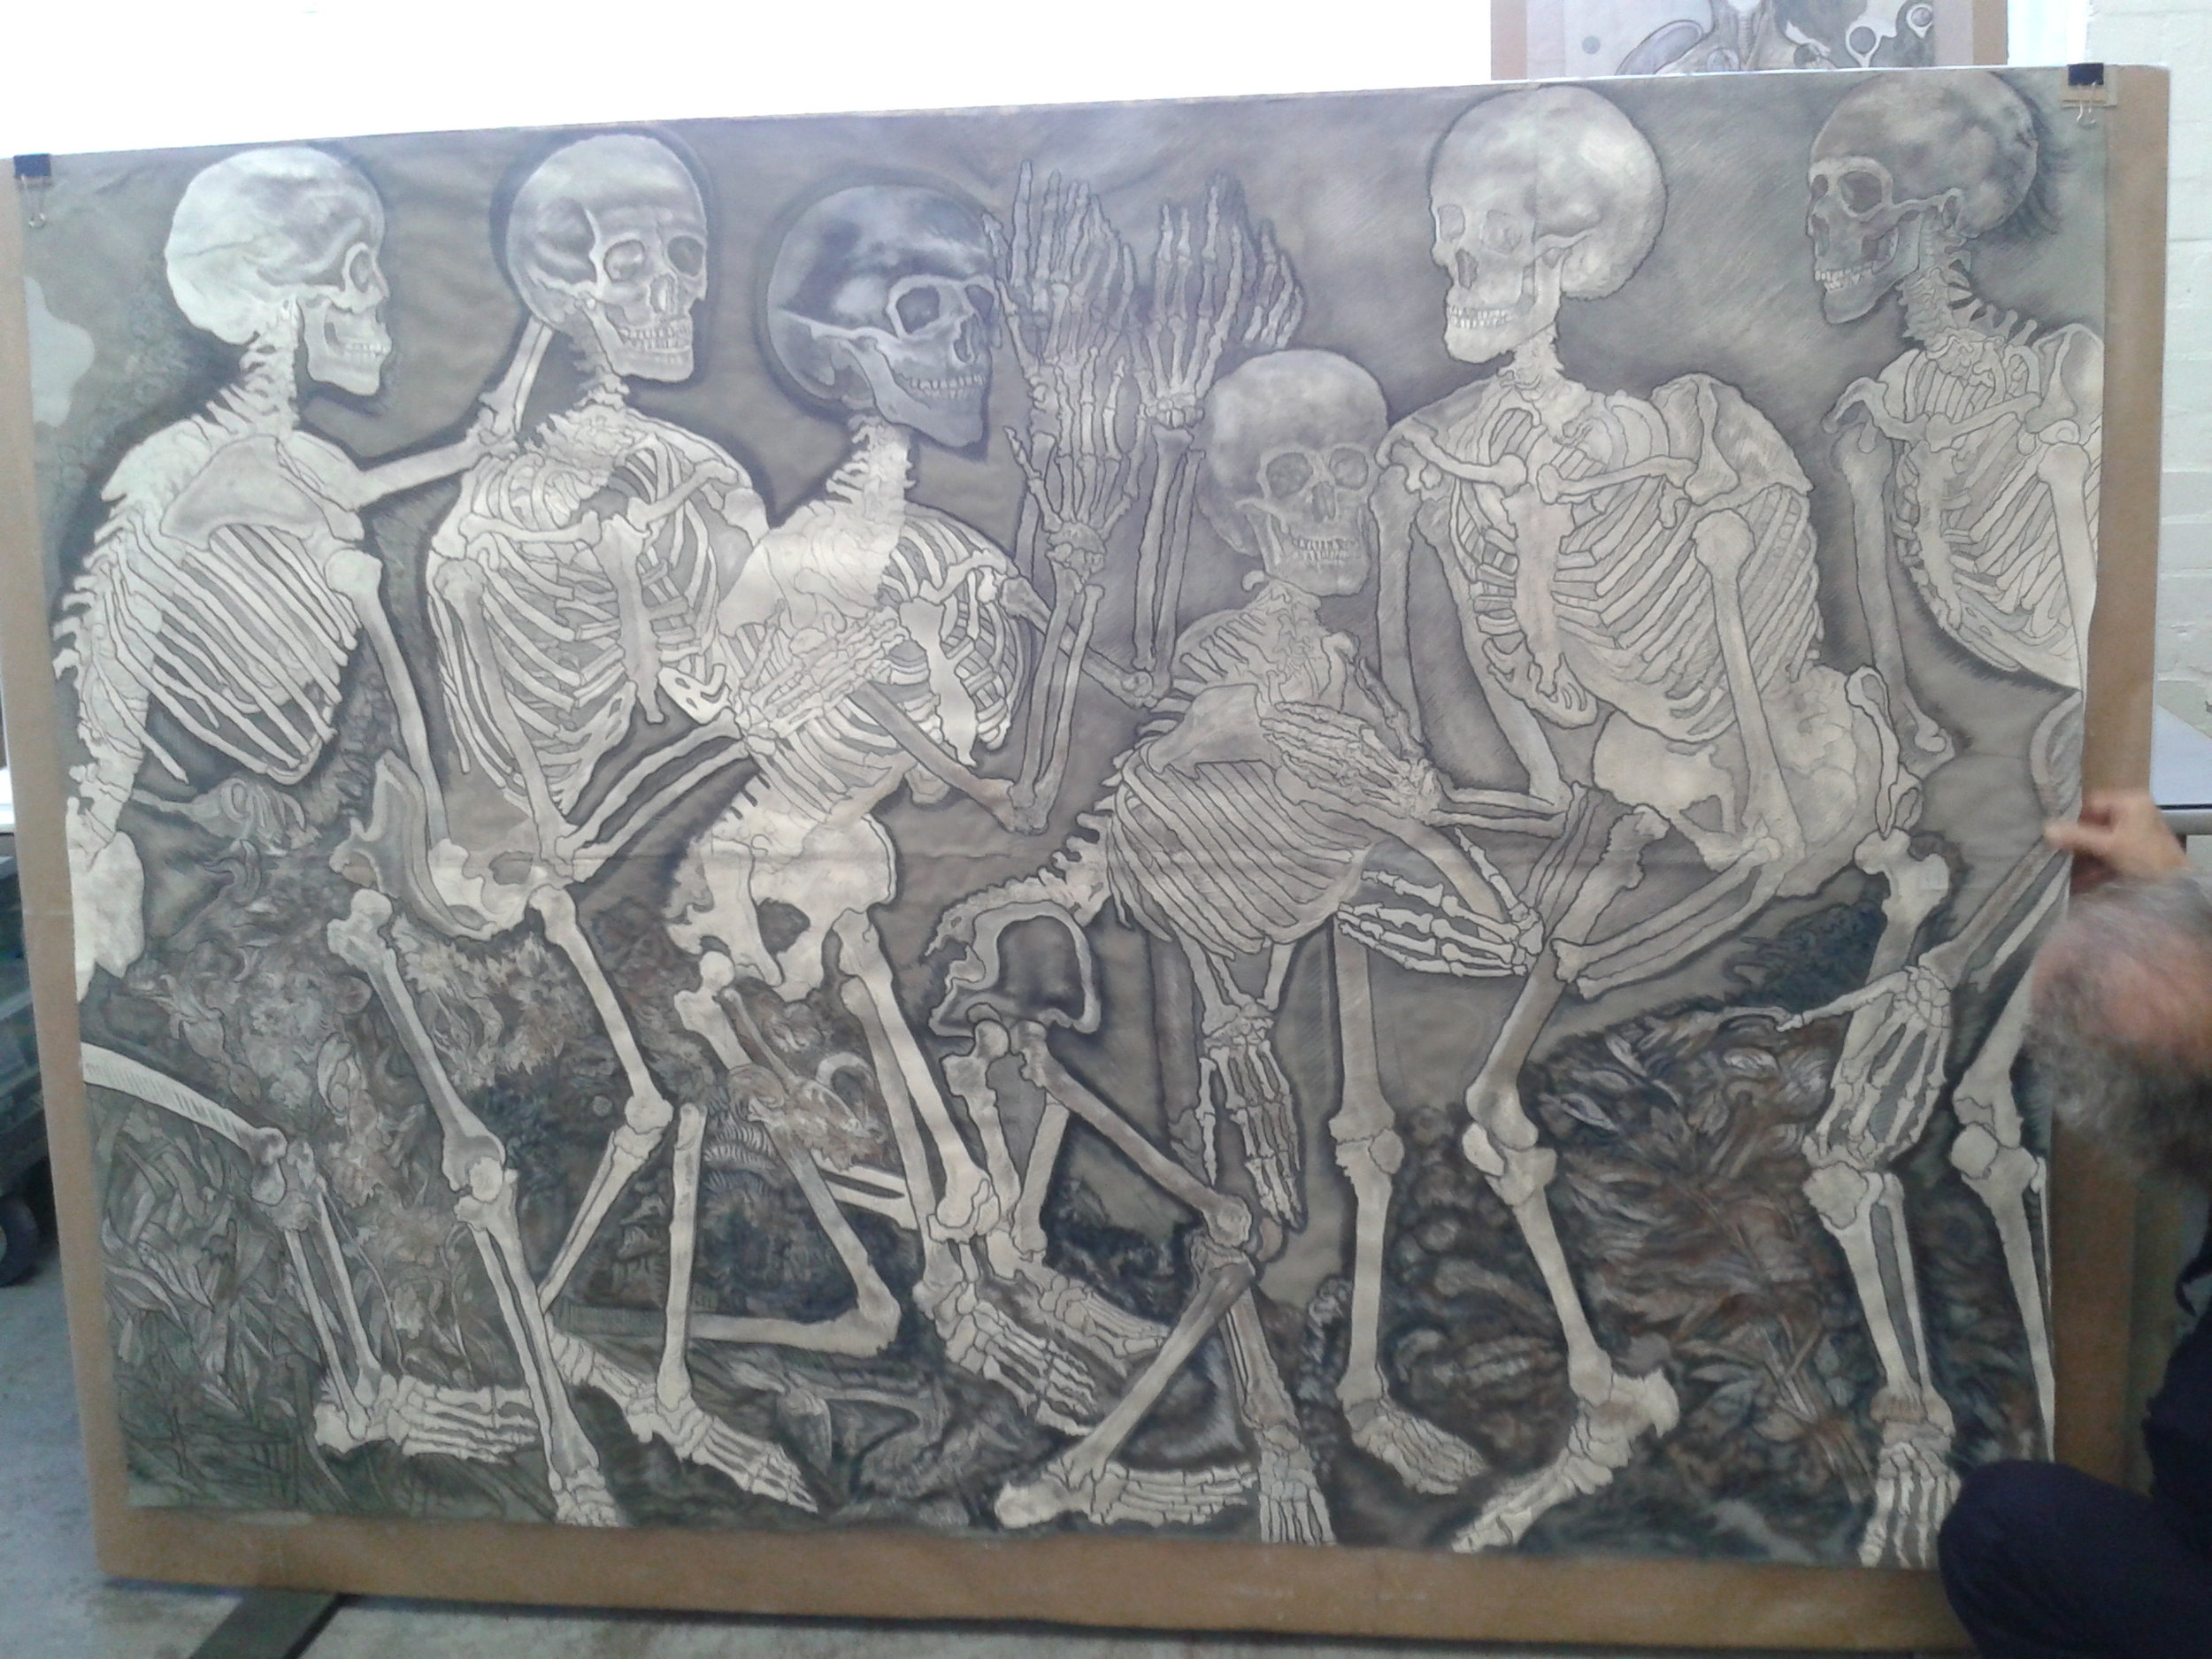 A Battle of Skeletons  before treatment.